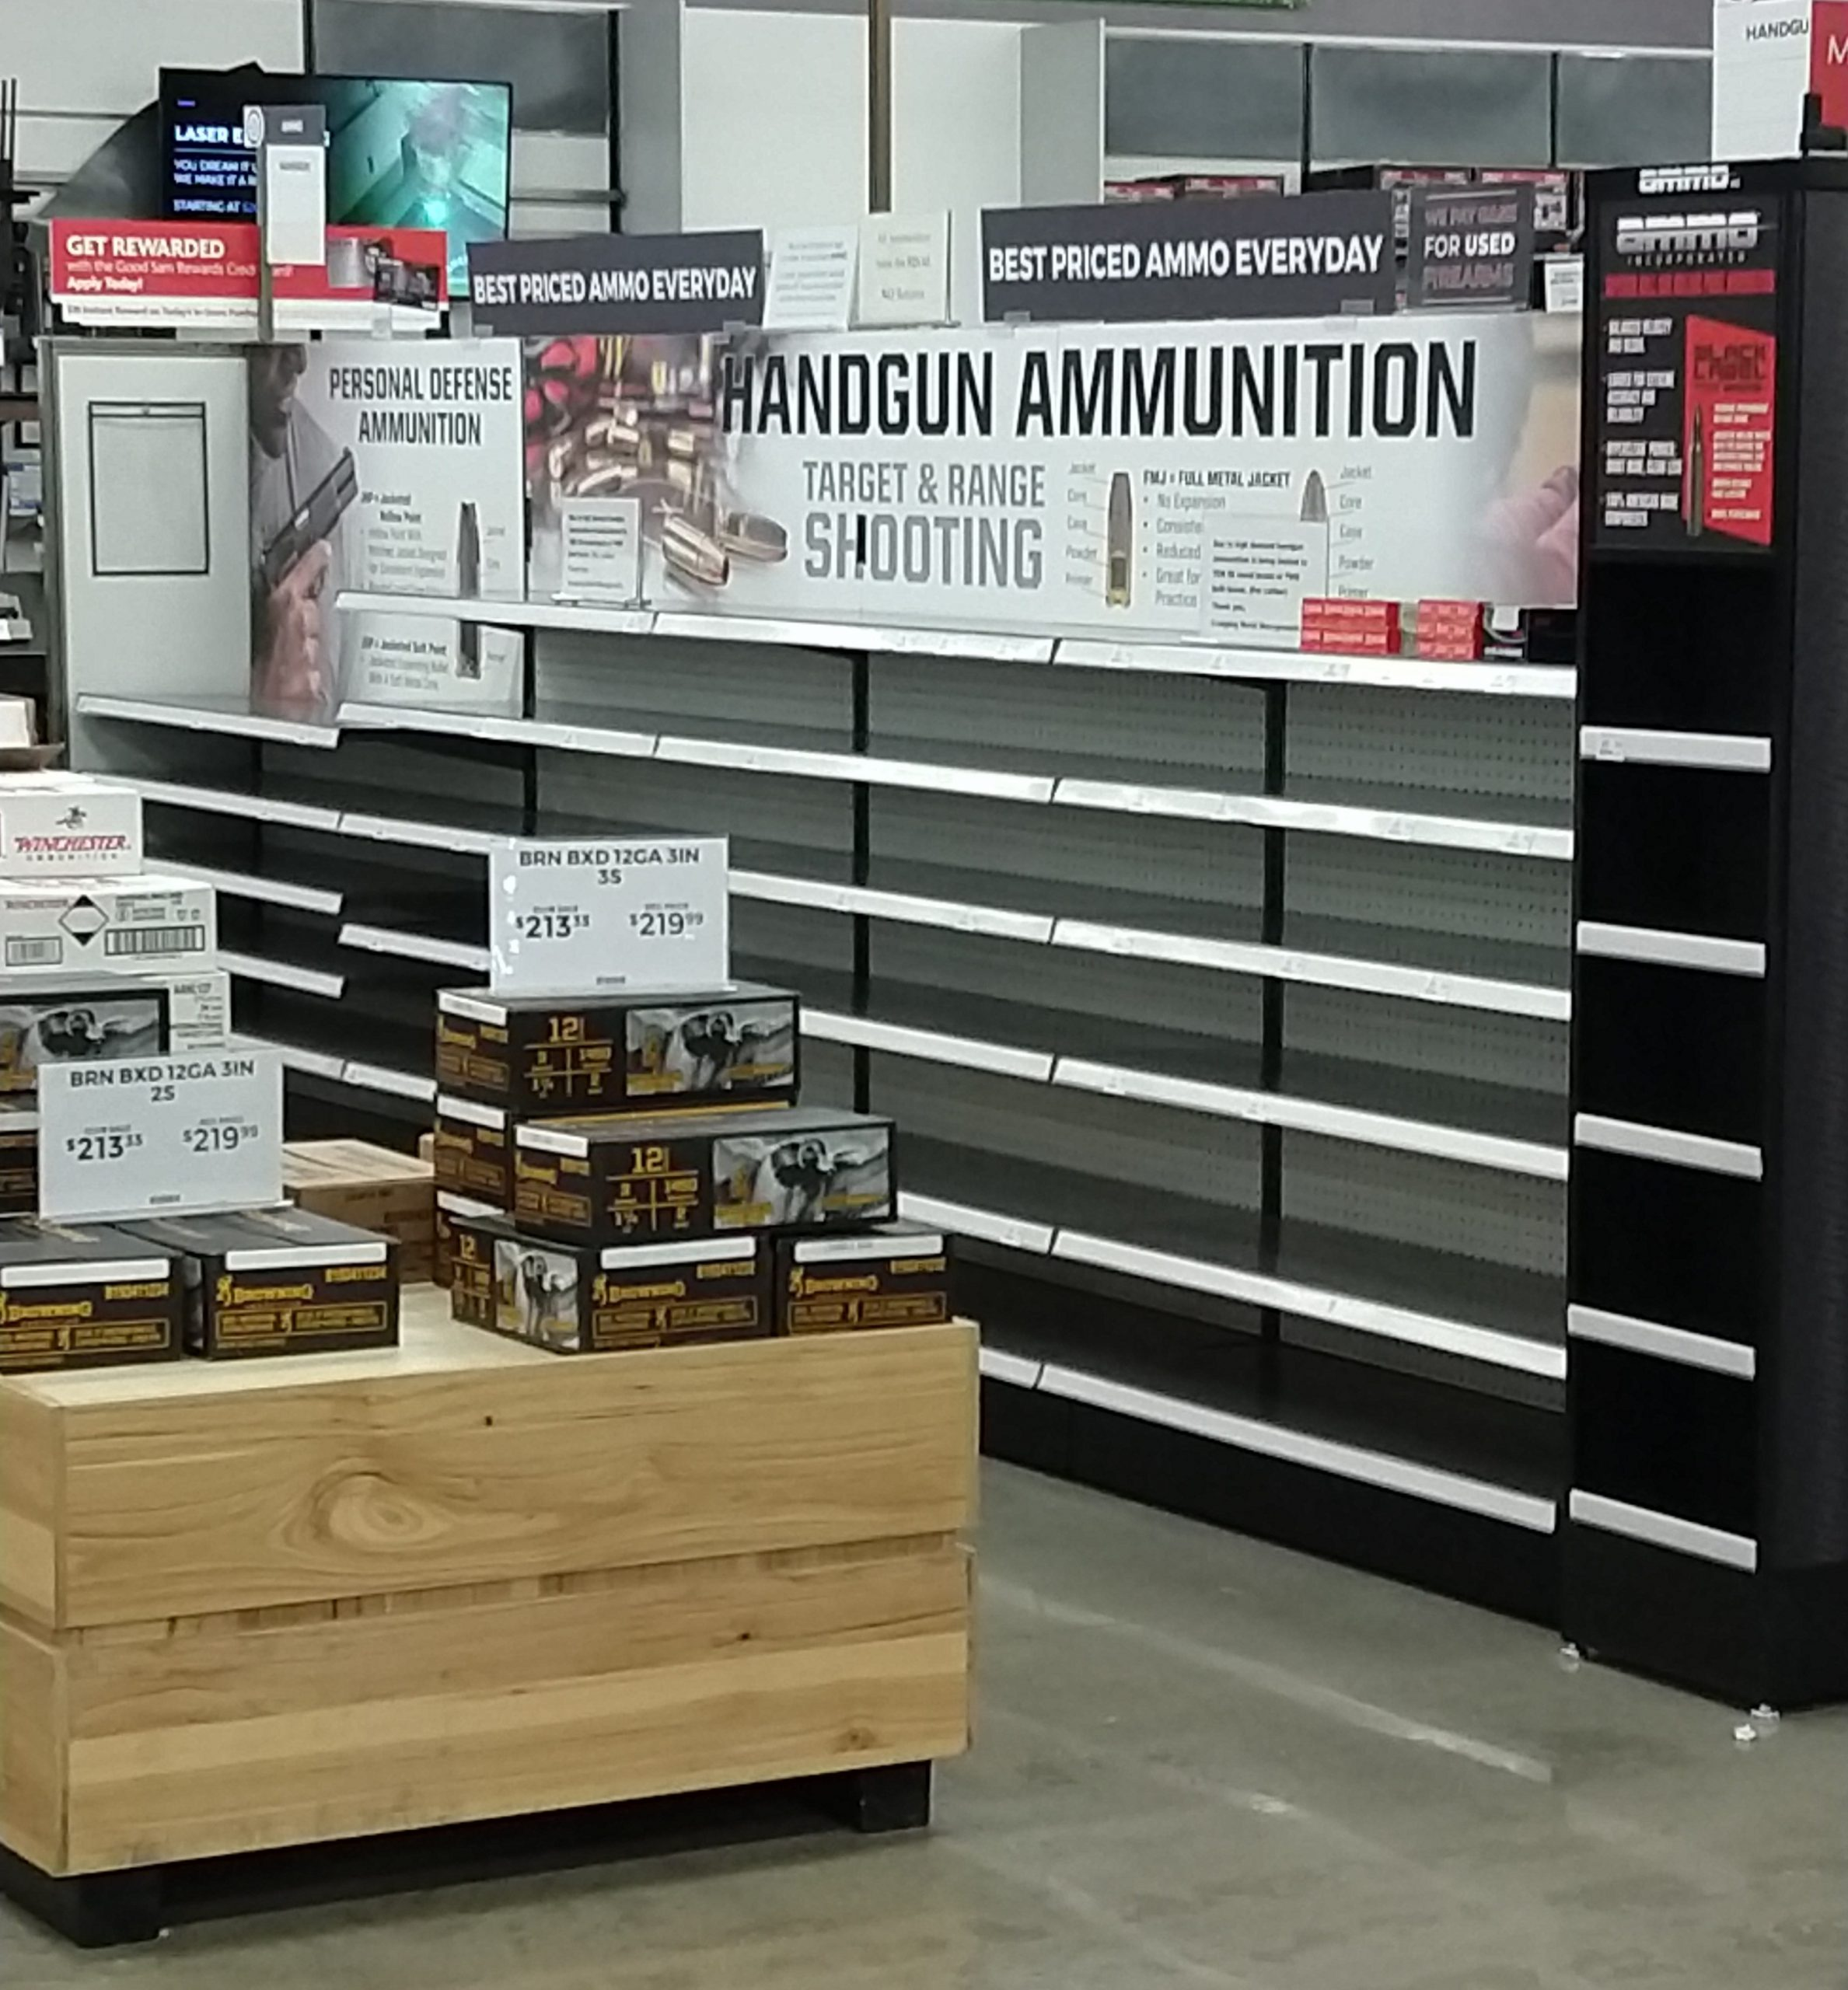 Anatomy Of Yet Another Guns and Ammo Shortage